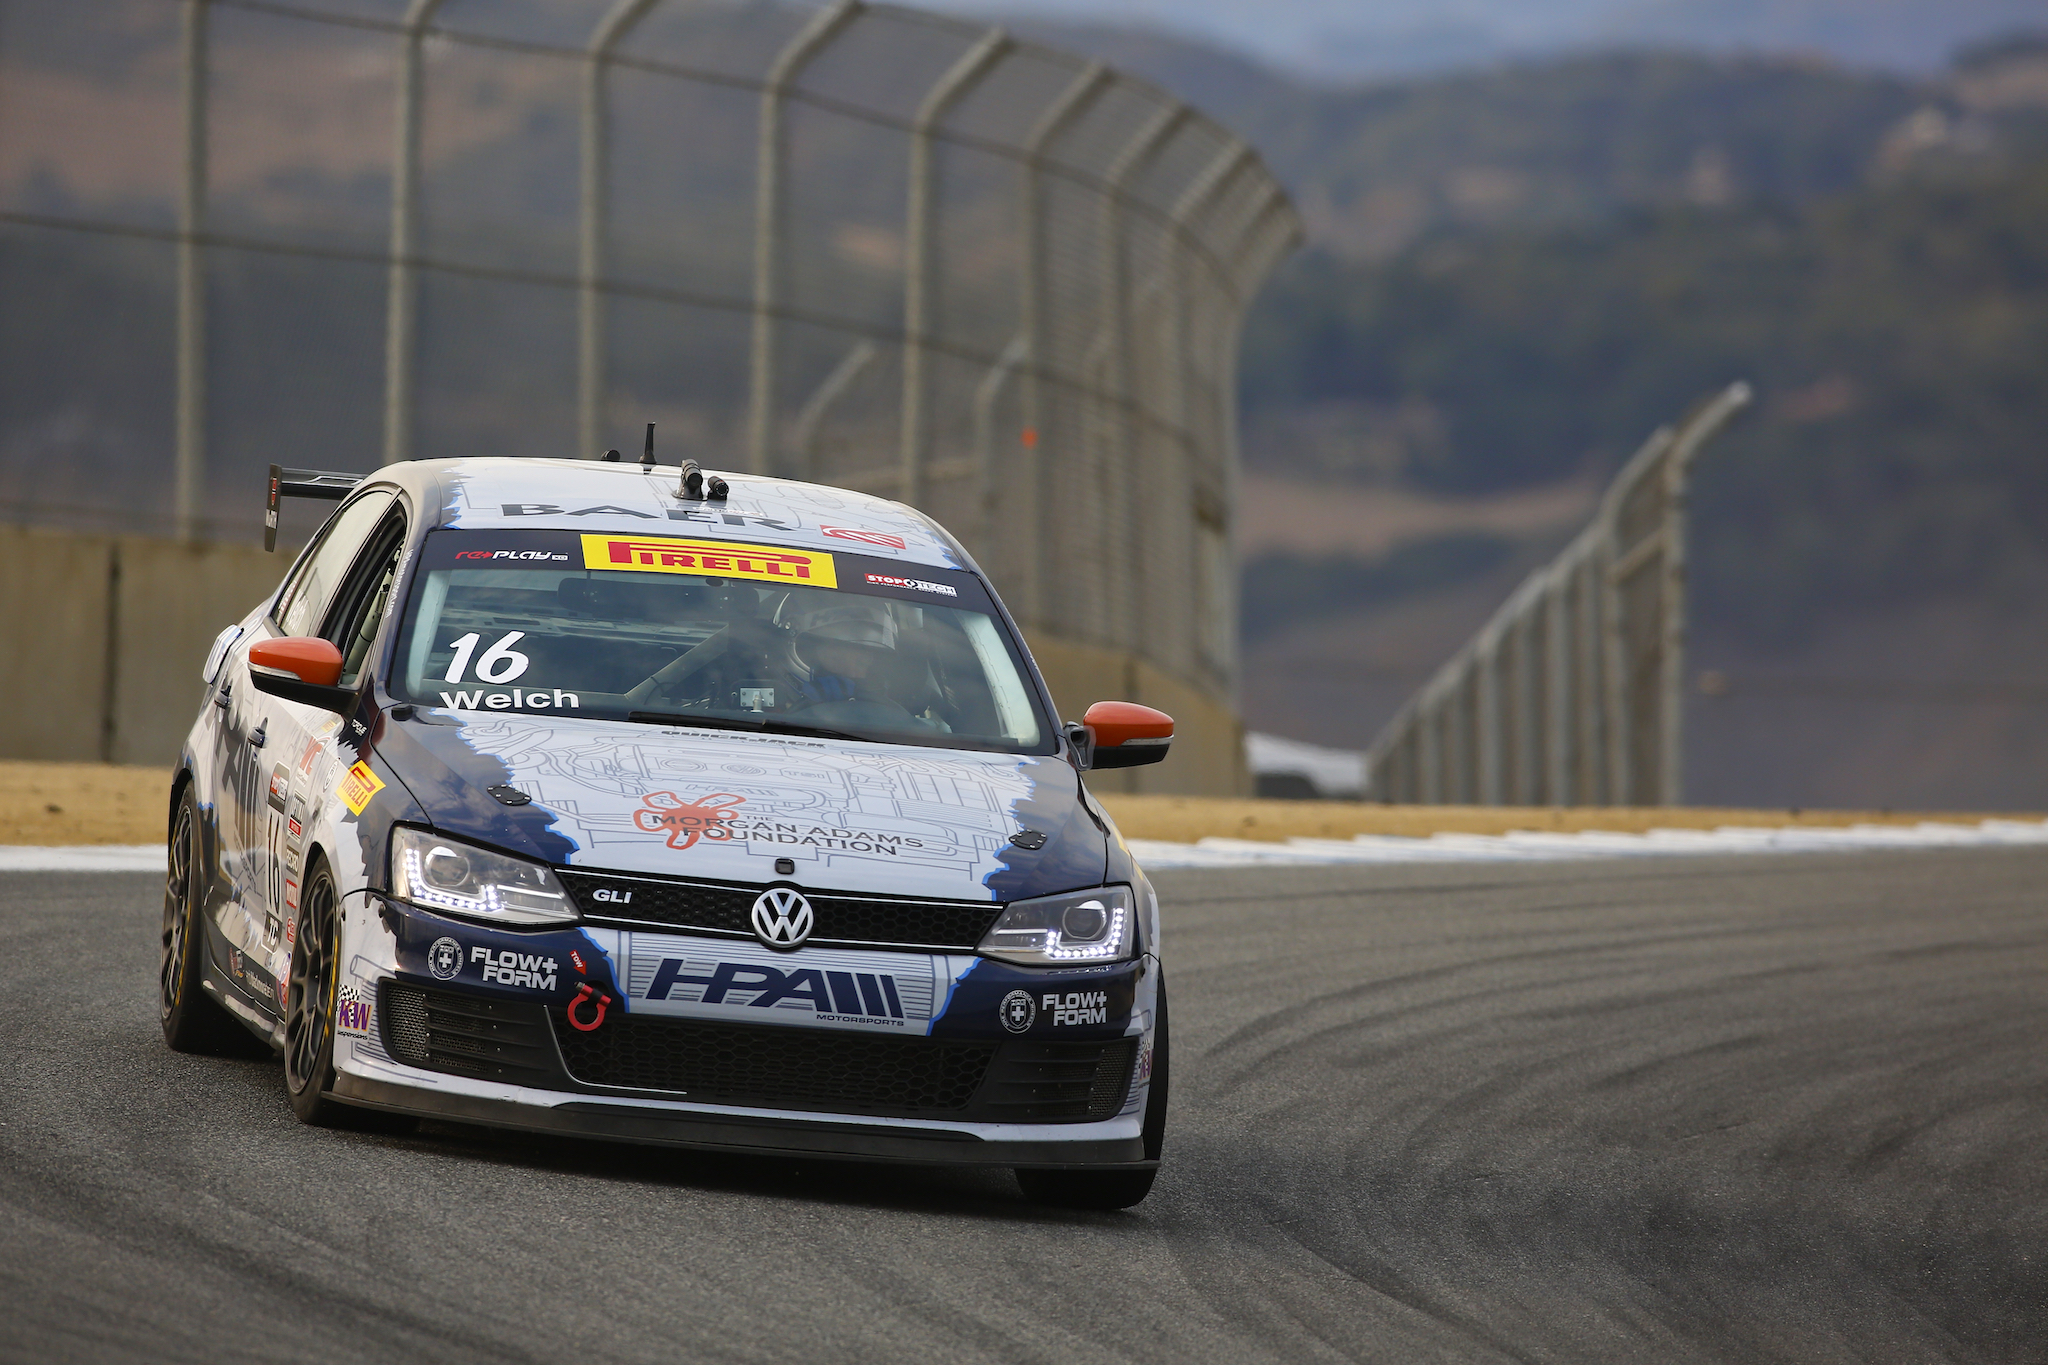 2012 Volkswagen Jetta GLI Touring Cars Race Car For Sale - $45000